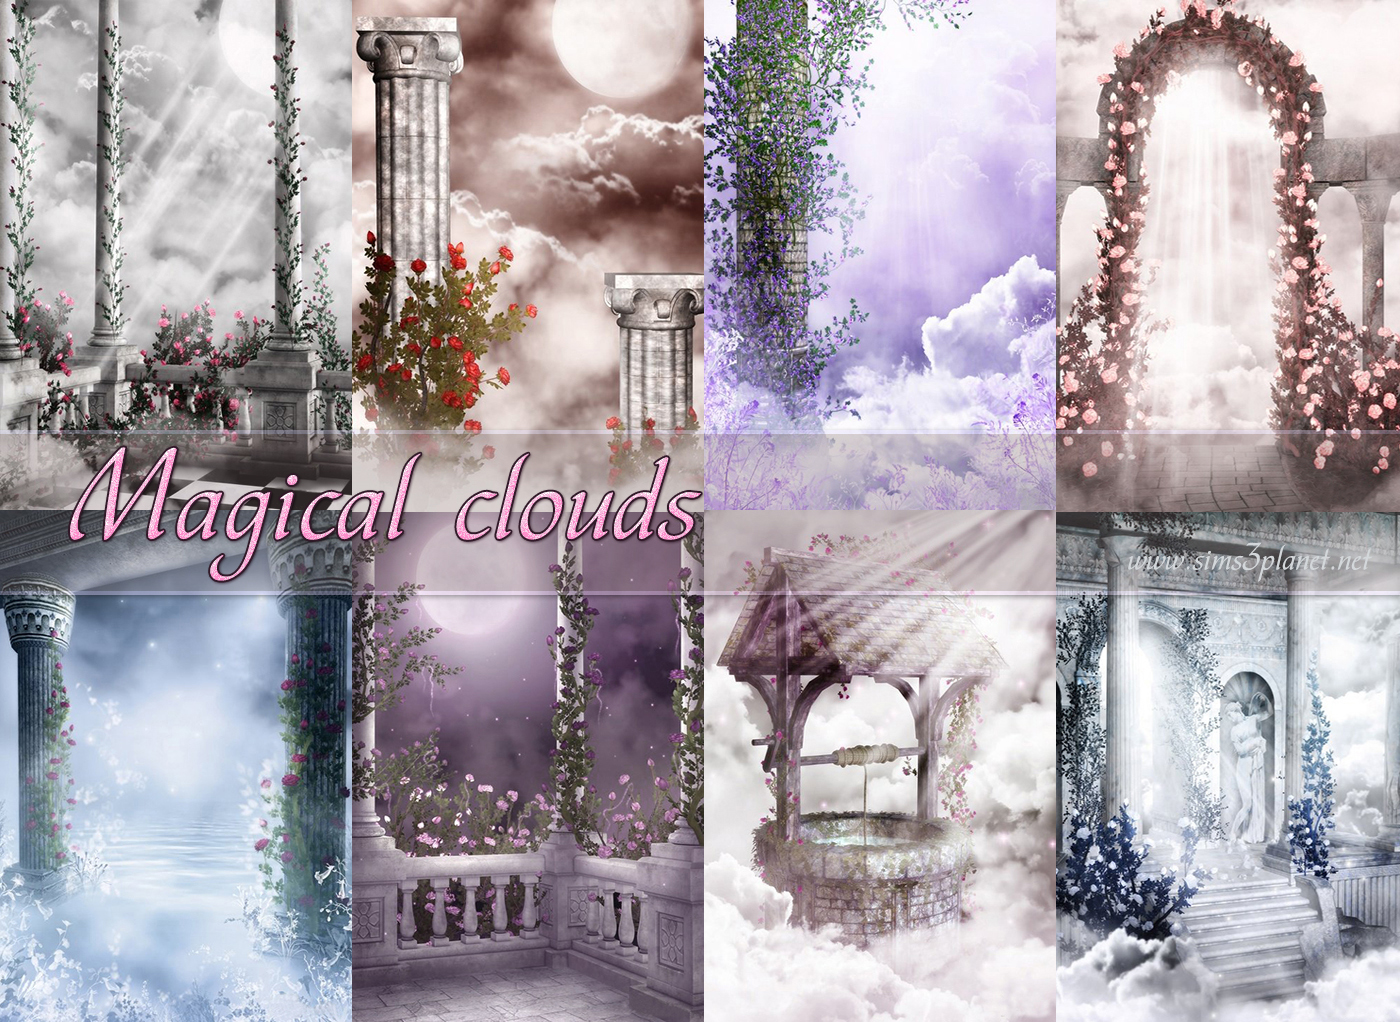 Magical clouds backgrounds by Torri